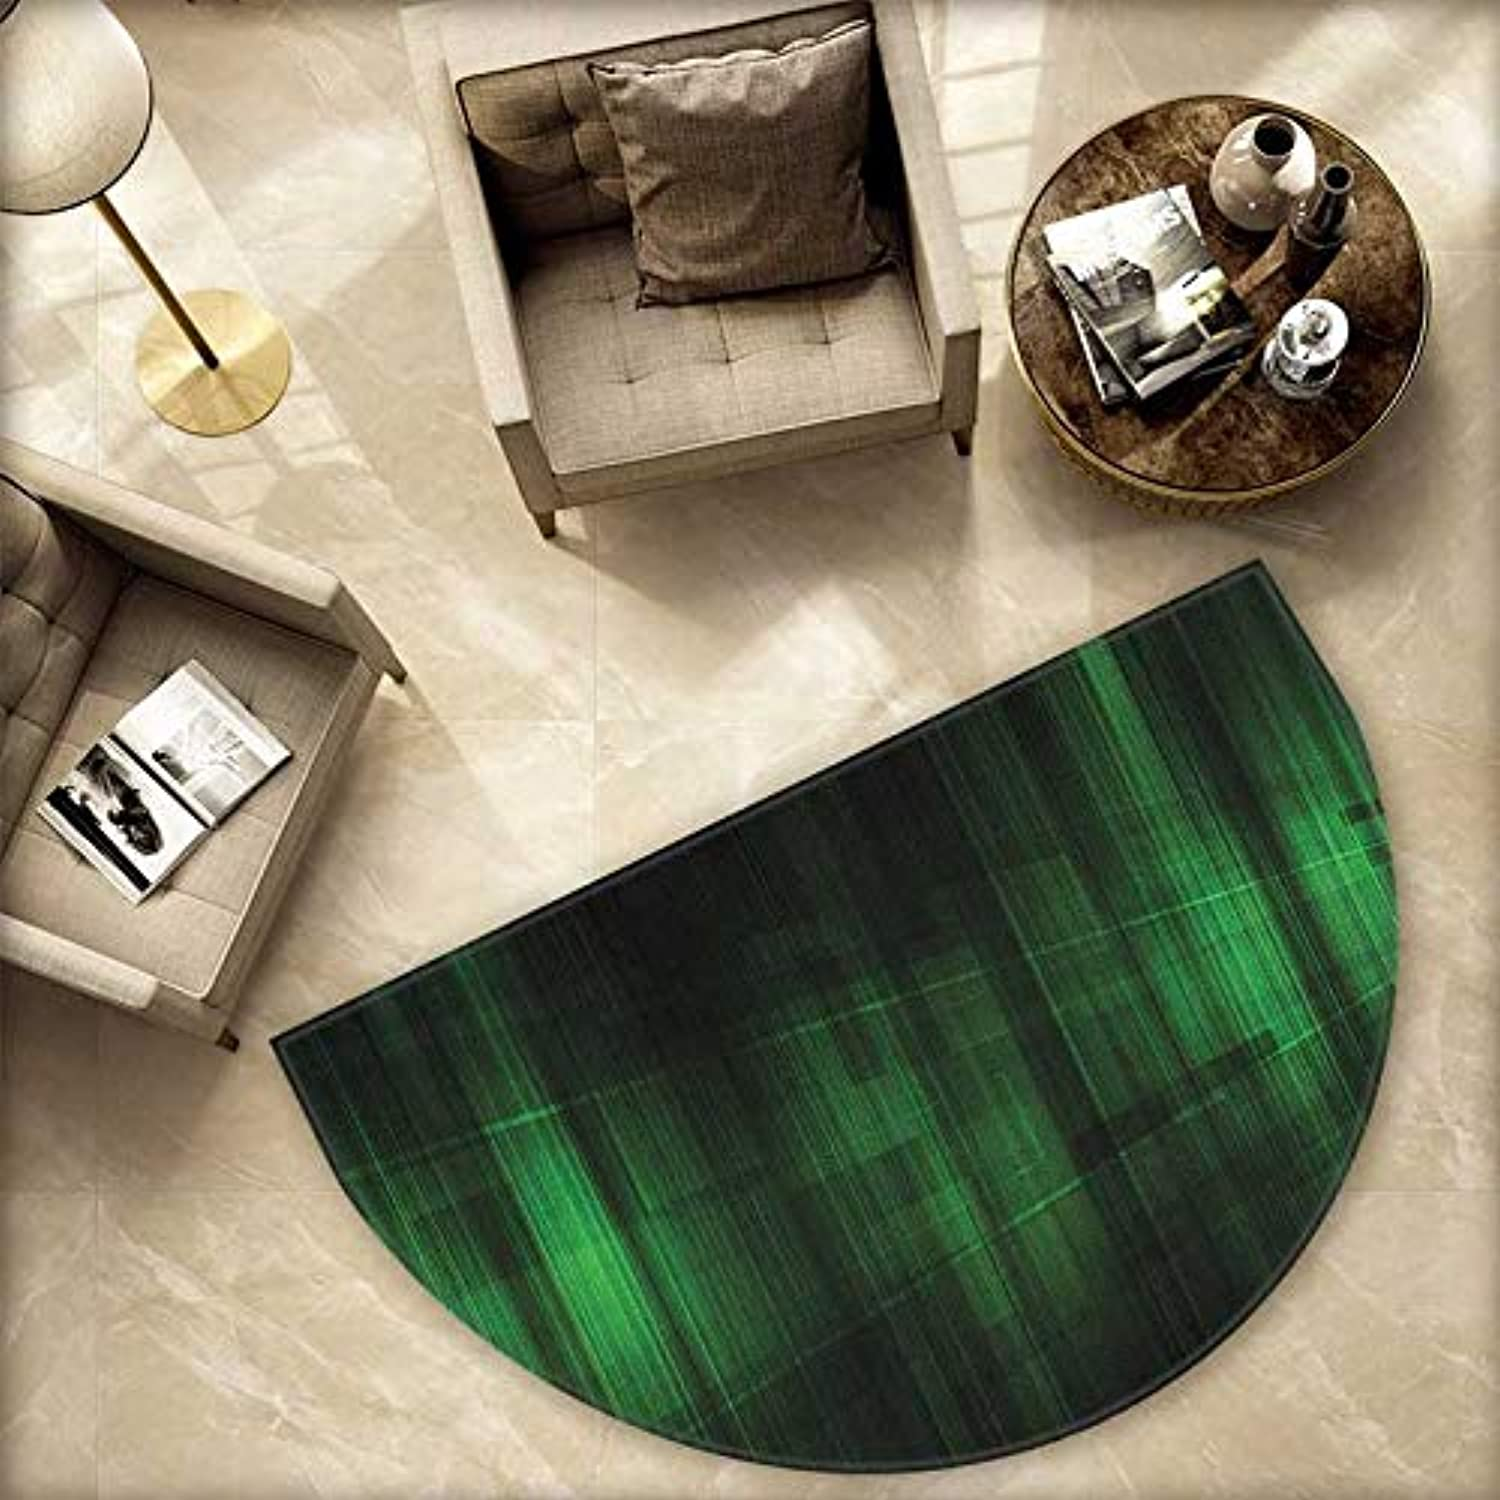 Forest Green Semicircle Doormat Vibrant Technology Pattern with greenical Lines Digital Technical Themed Print Halfmoon doormats H 78.7  xD 118.1  Green Black